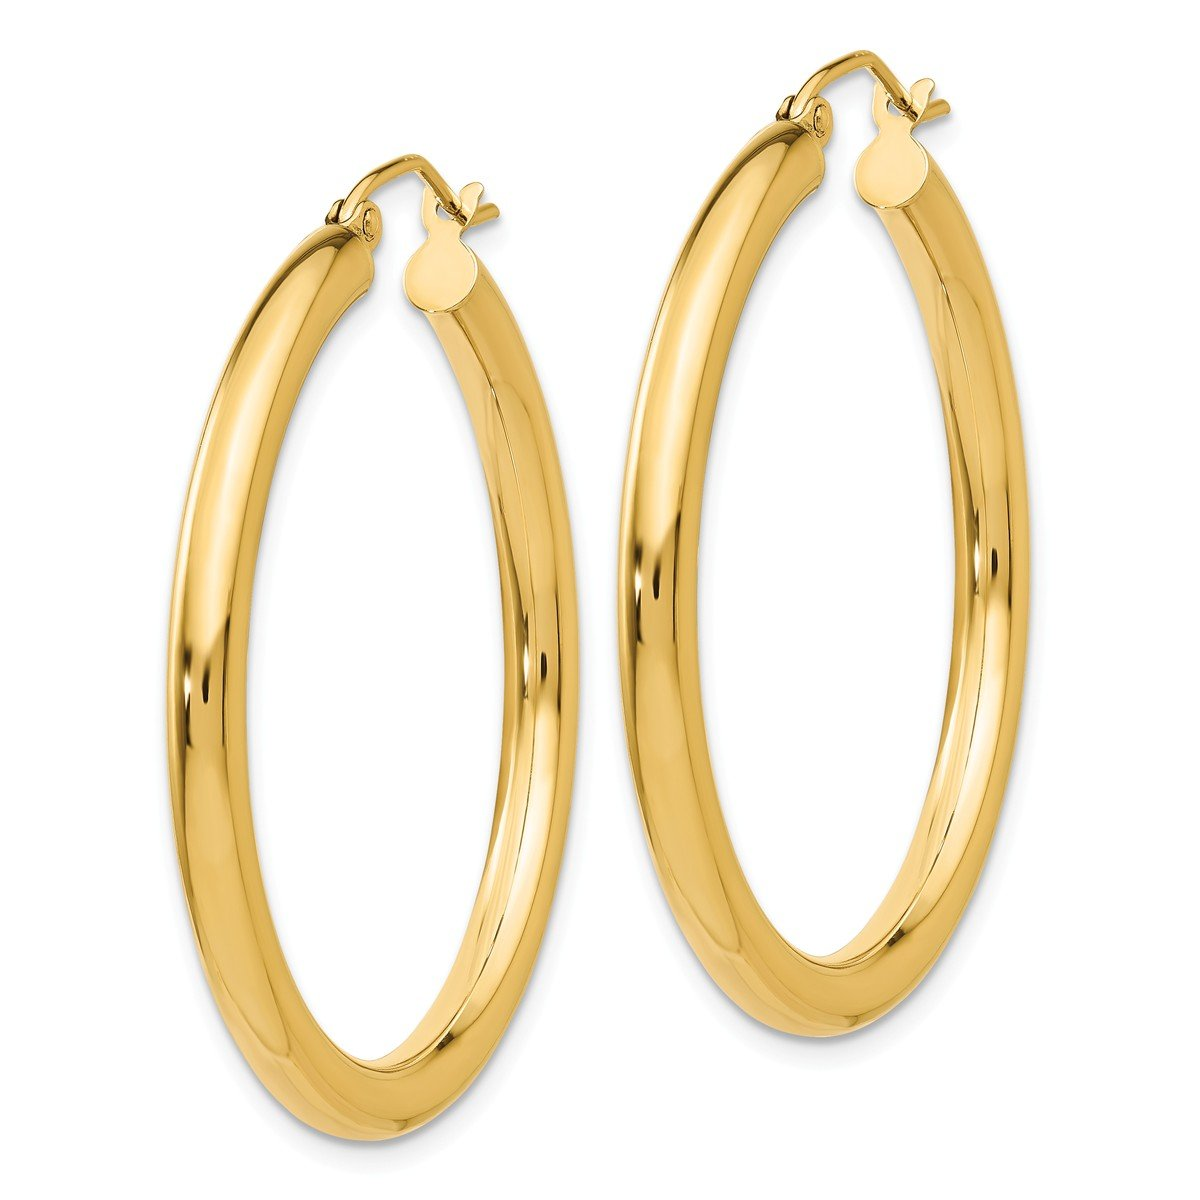 Designs by Nathan, Classic 14K Yellow Gold Tube Hoop Earrings: Seamless, Hollow, and Lightweight (Wide 3mm x 35mm (about 1 3/8''))